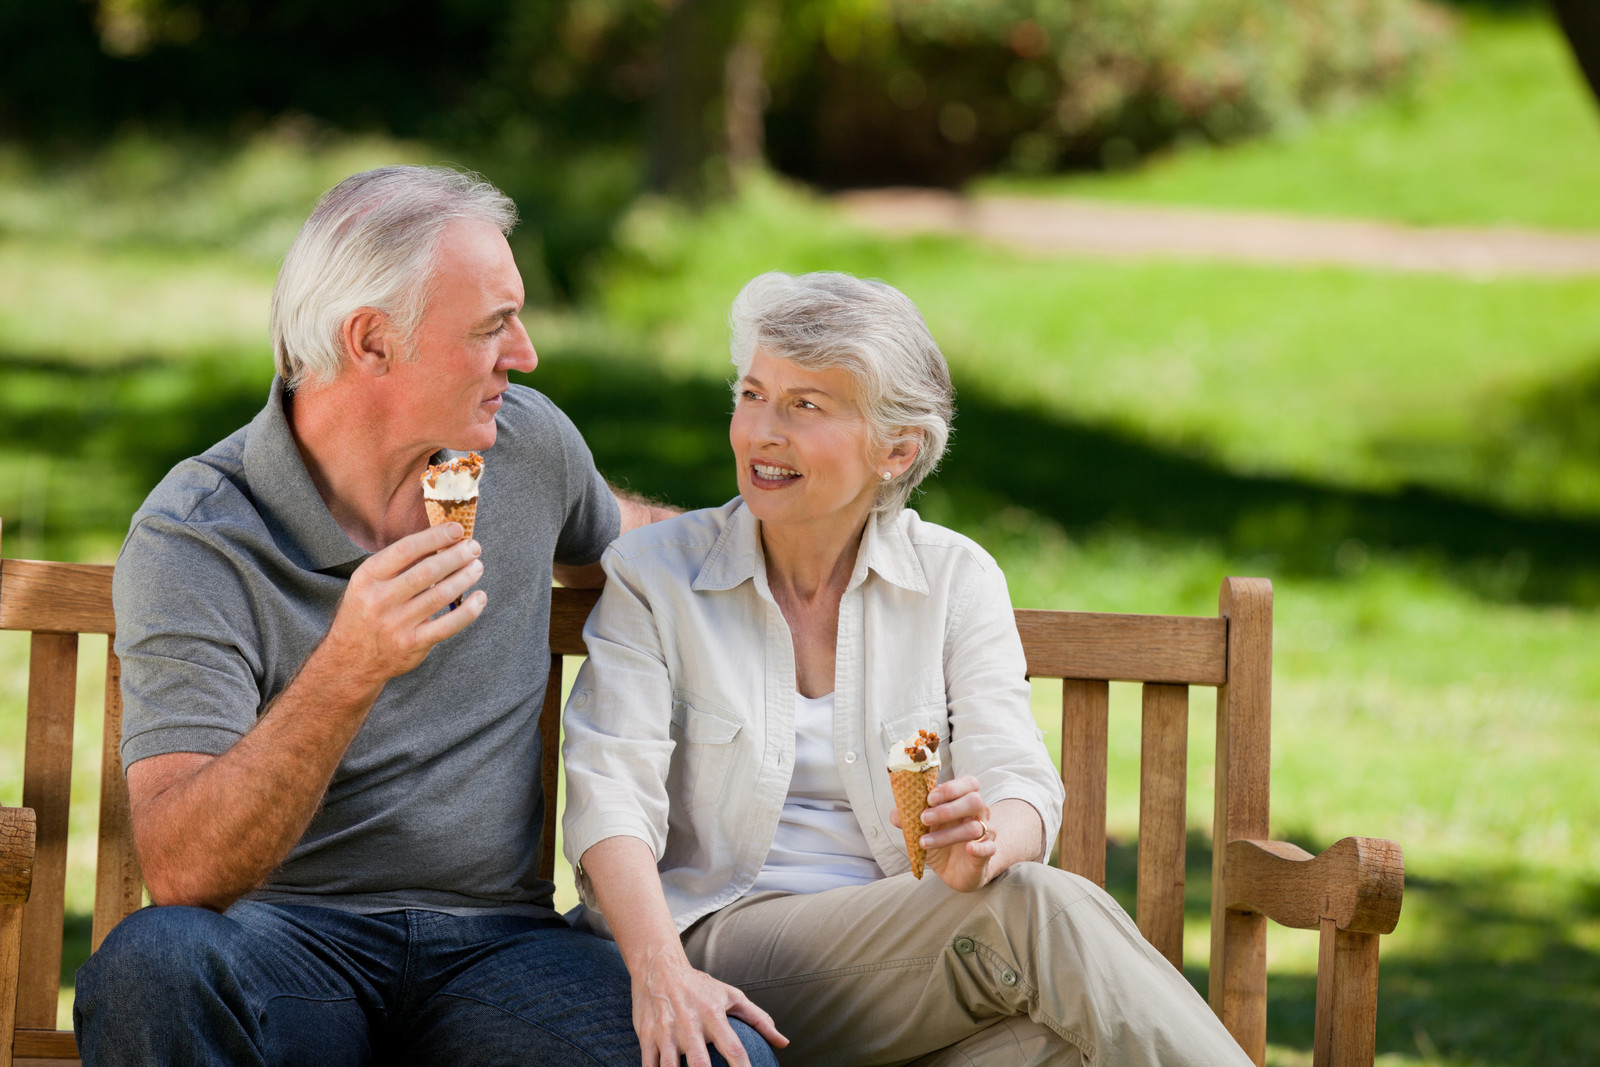 Senior online dating scams - Senior couple sitting on a wooden park bench eating ice cream cones